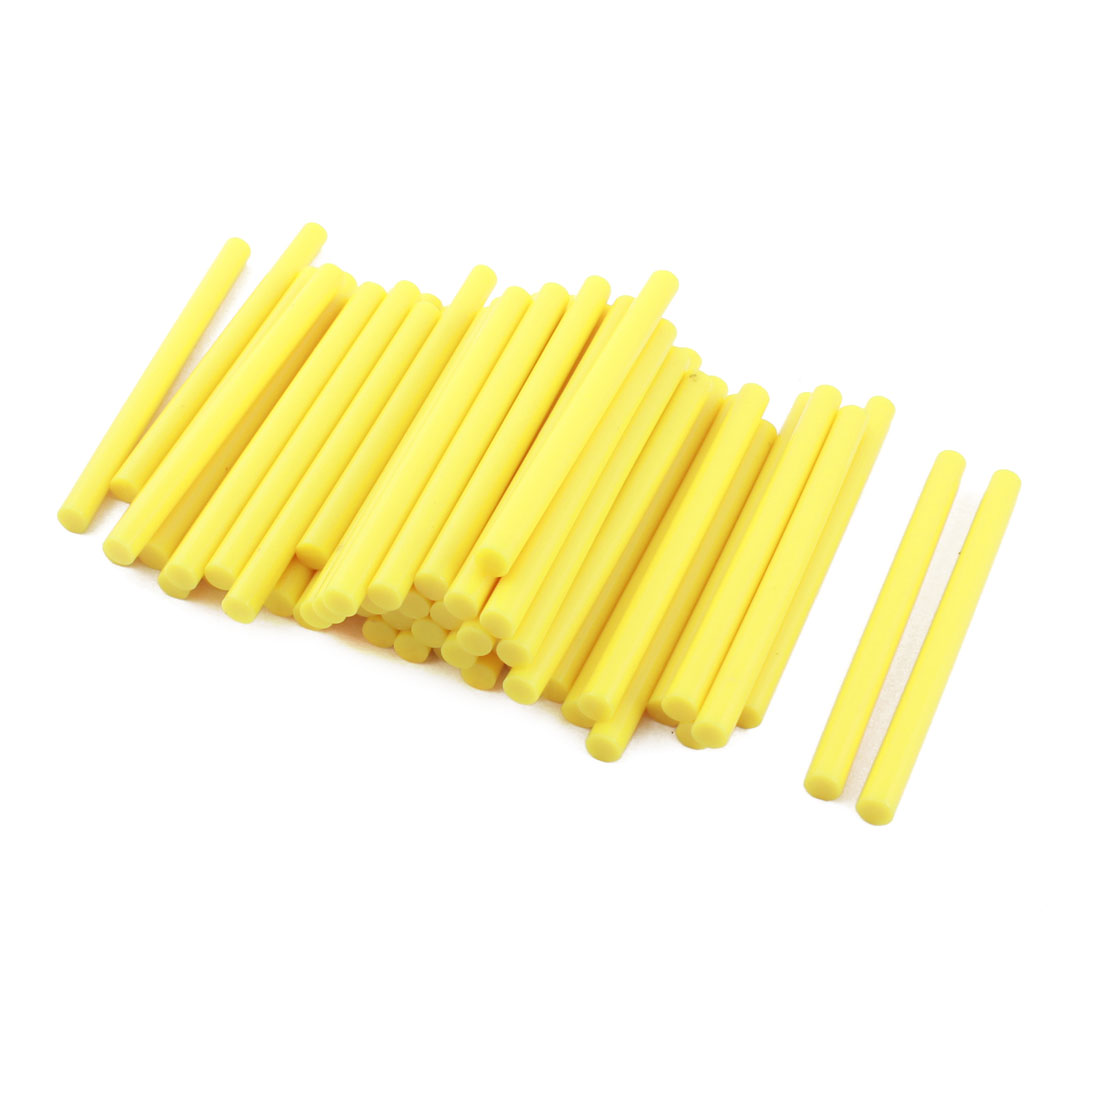 50 Pcs Yellow Hot Melt Glue Gun Adhesive Sticks 7mm x 100mm for Crafting Models